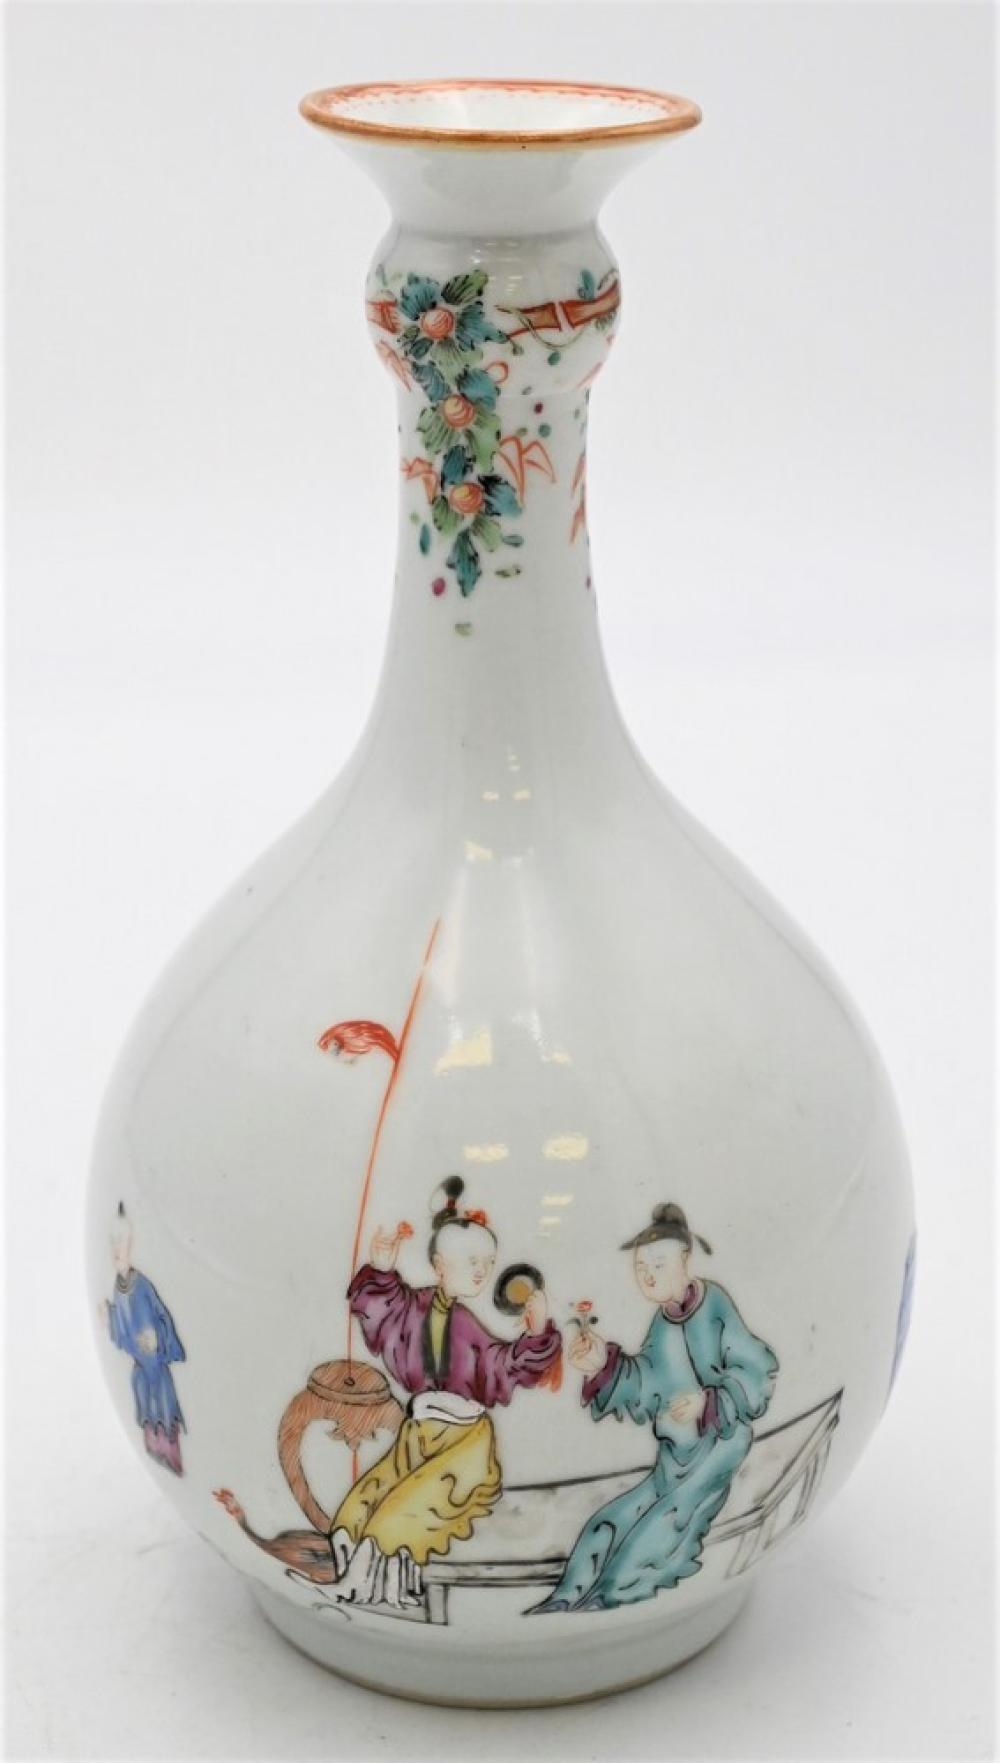 Chinese Rose Famille Porcelain Vasehaving painted figuresheight 9 1/2 inches